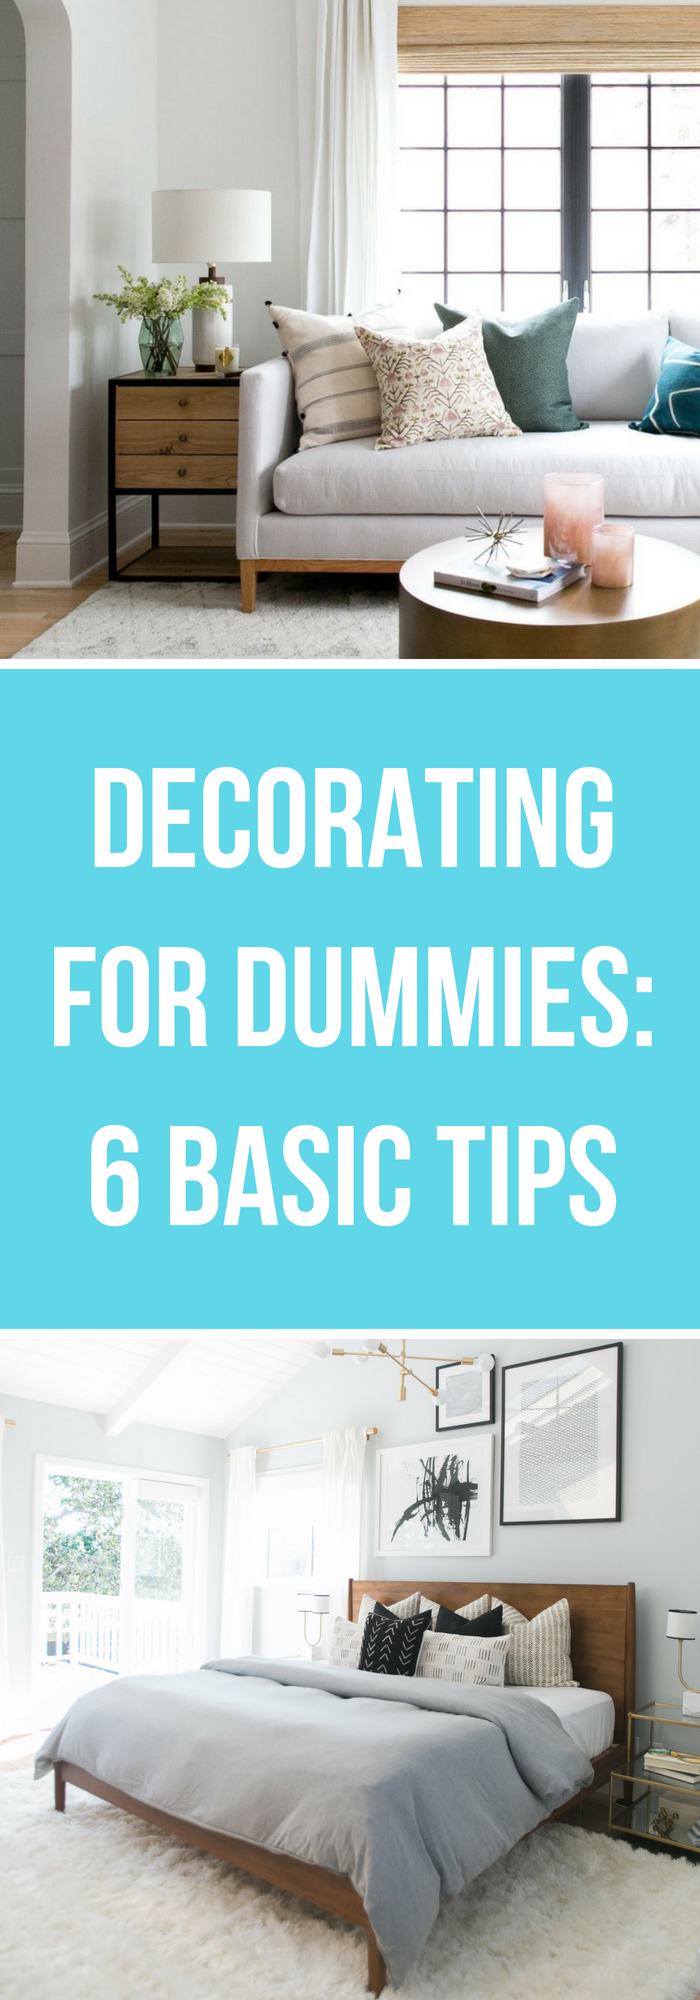 home design for dummies decorating for dummies 6 basic house tips bedroom decorating tips home decor room decor 2108